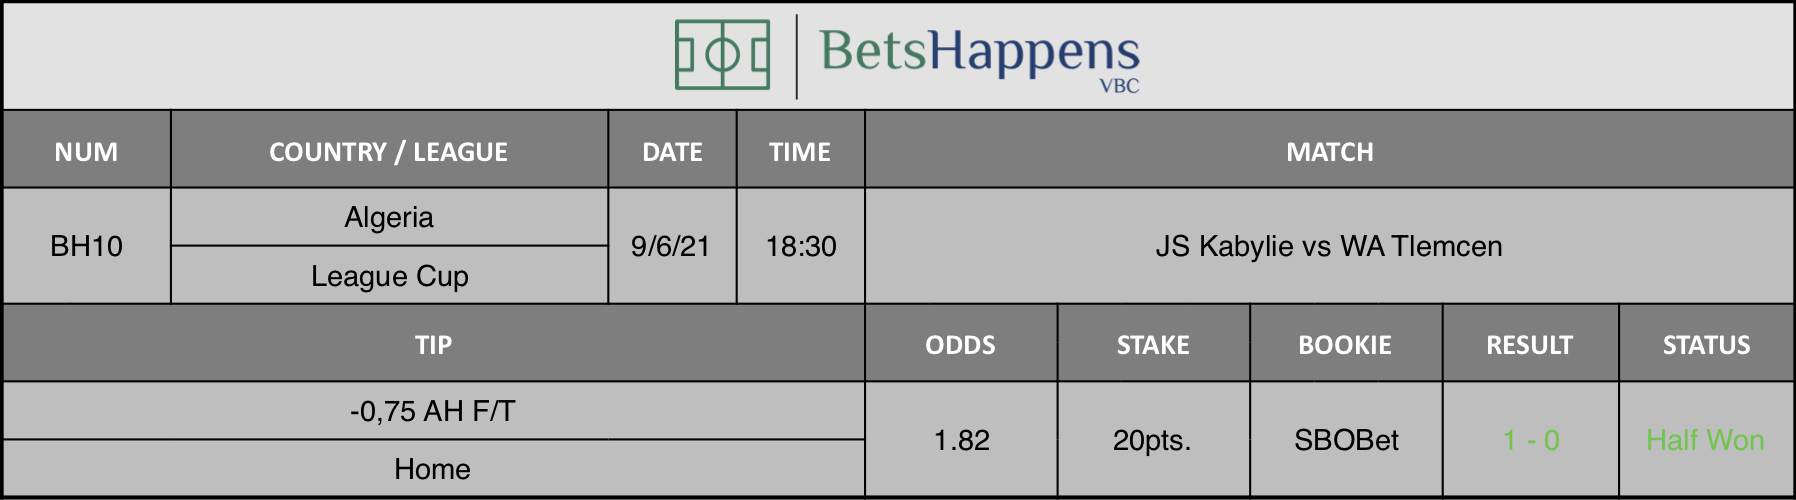 Results of our tip for the JS Kabylie vs WA Tlemcen Match -0,75 AH F/T Home is recommended.